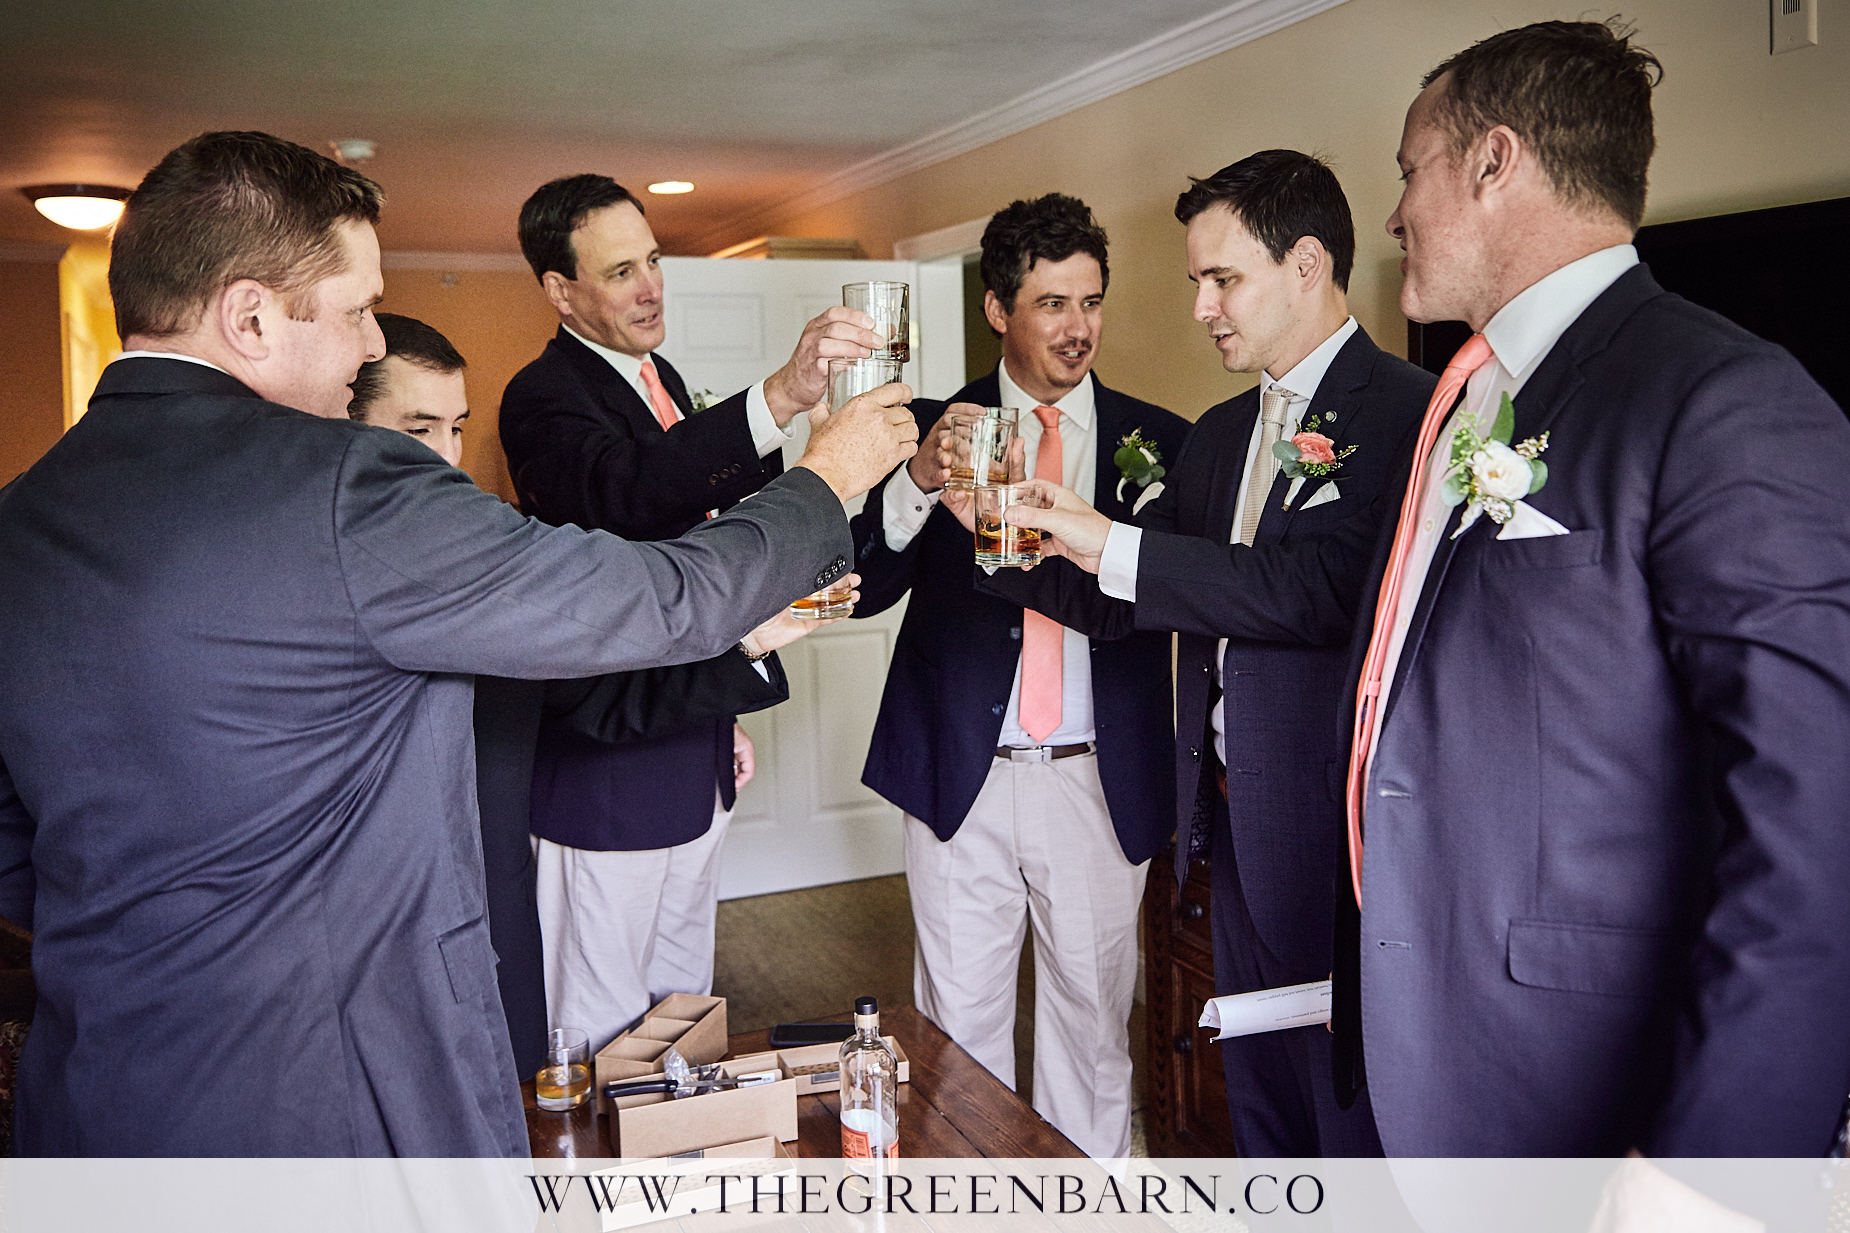 Groom and Groomsmen Cheers Their Whiskey Glasses Together Before the Wedding Ceremony | NH Wedding Photographer